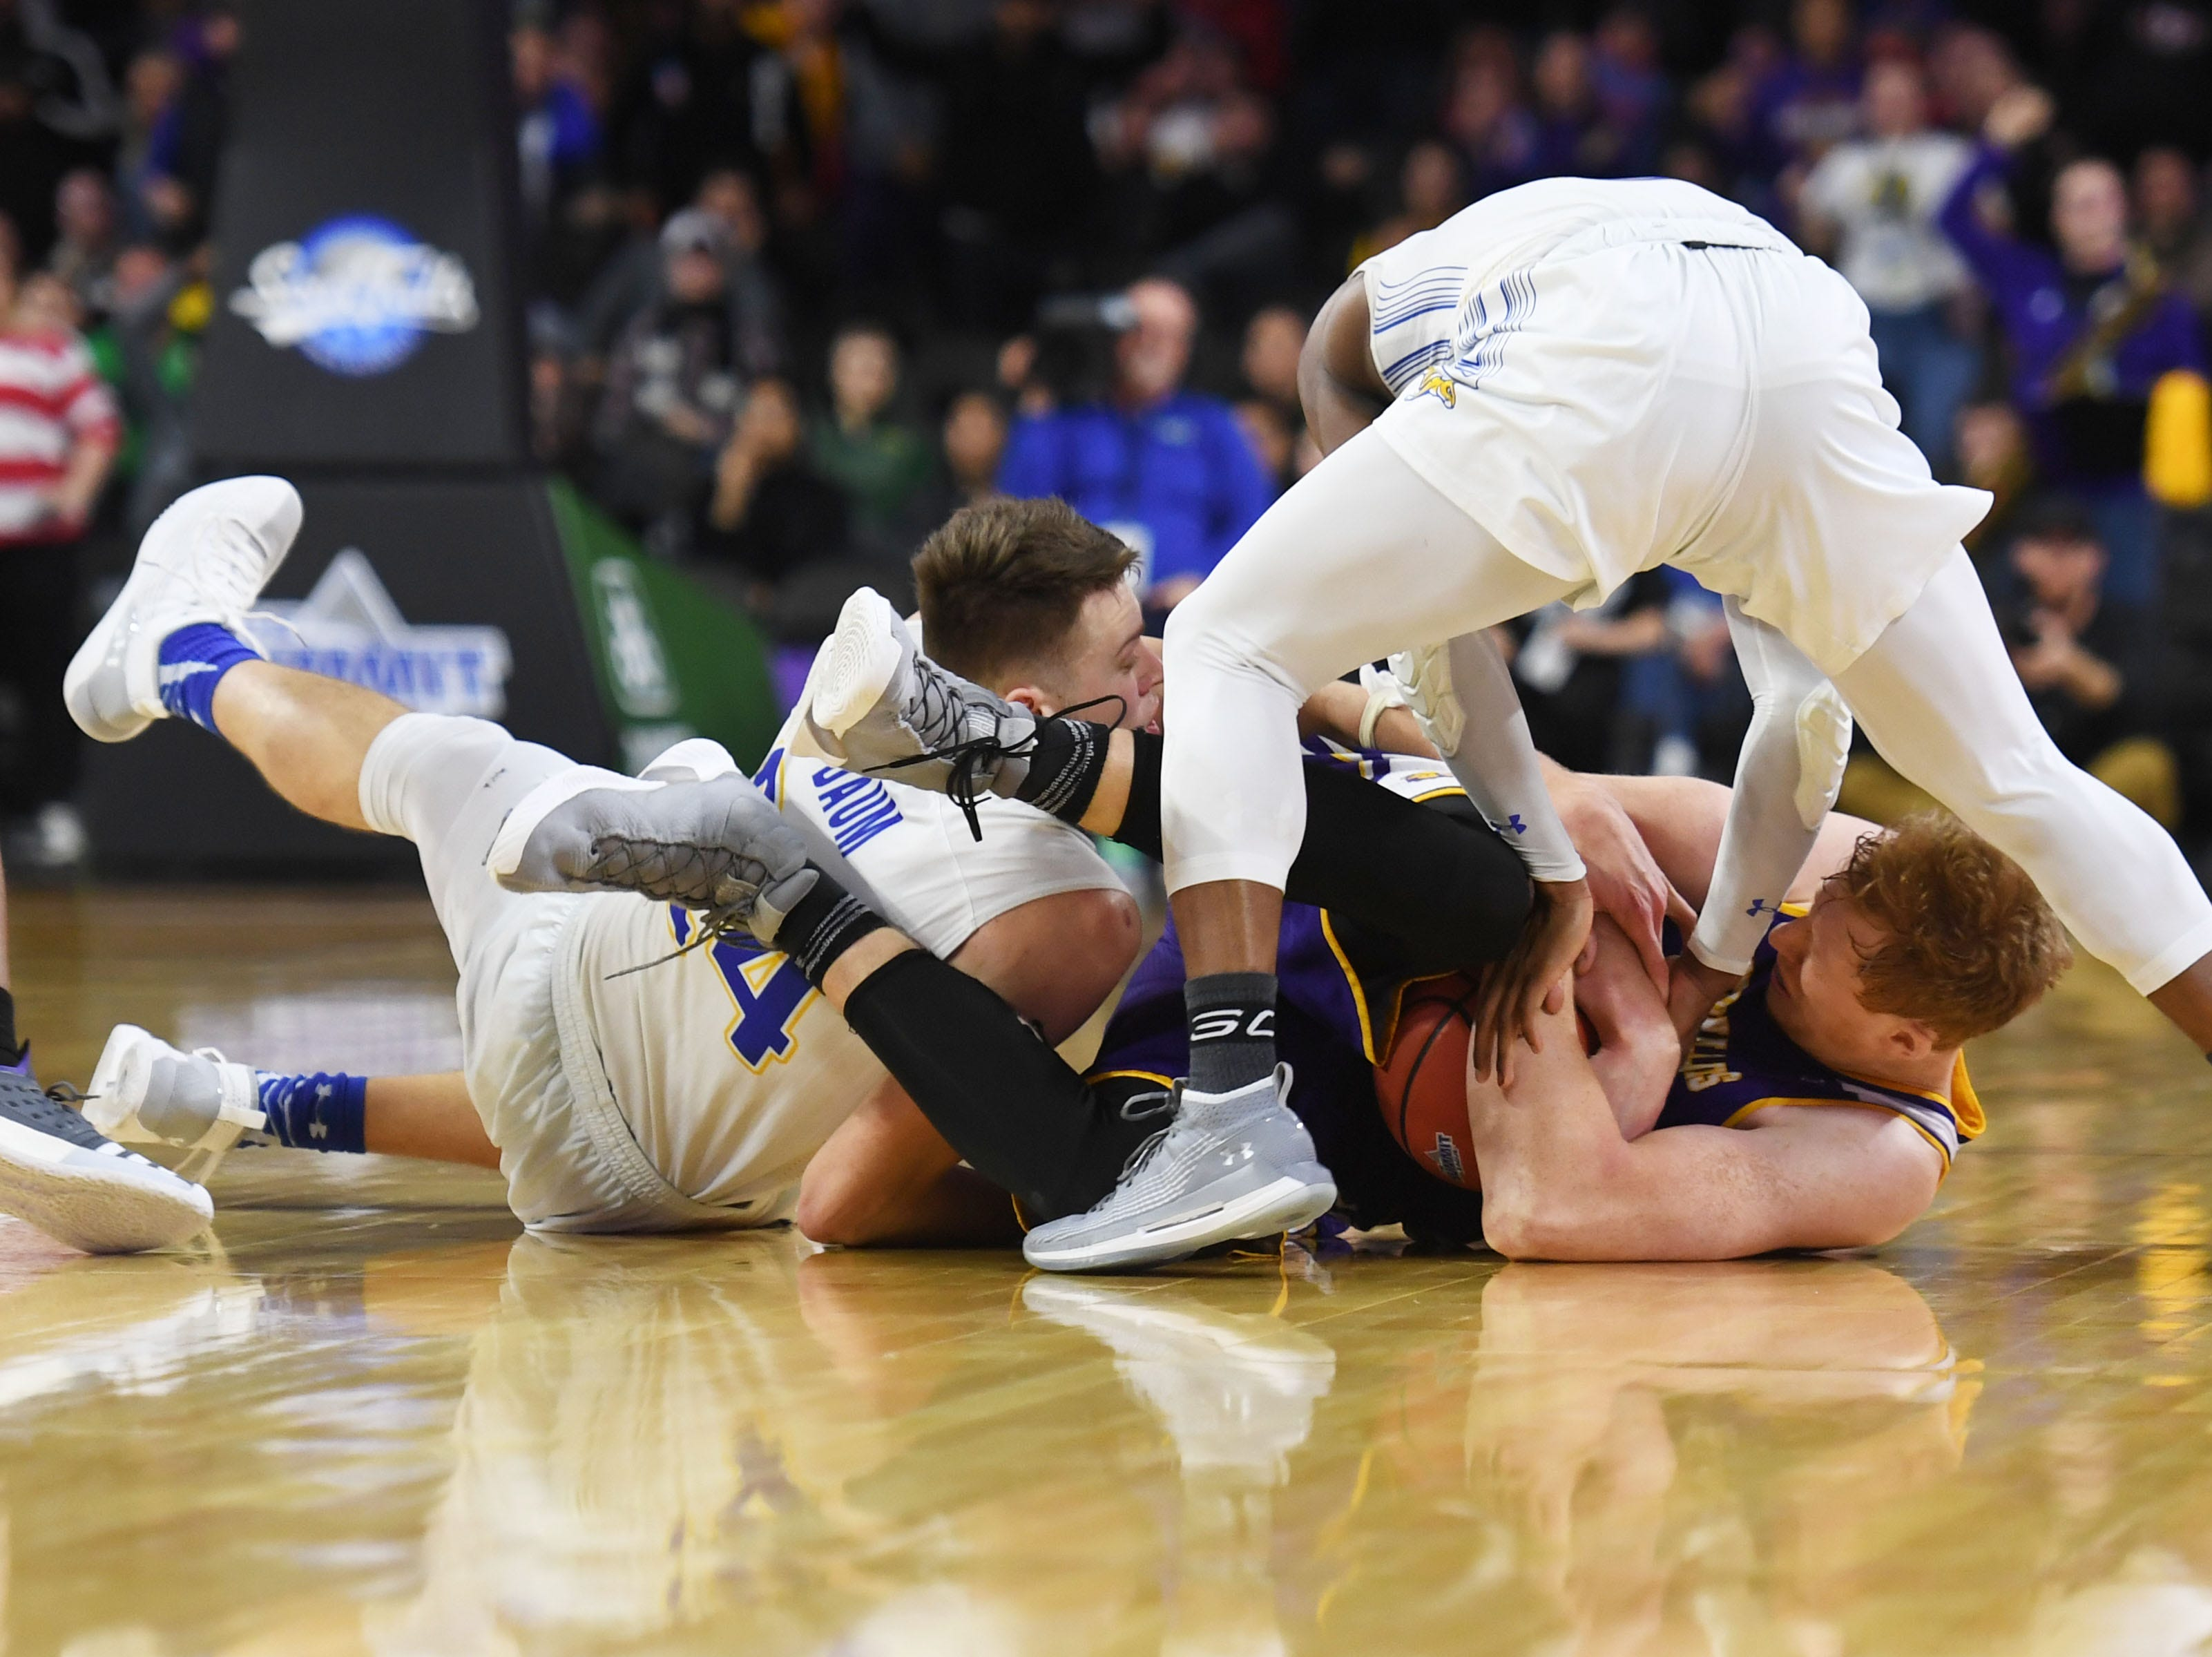 Western Illinois' Brandon Gilbeck hangs onto the ball against SDSU Saturday, March 9, in the Summit League tournament at the Denny Sanford Premier Center in Sioux Falls.